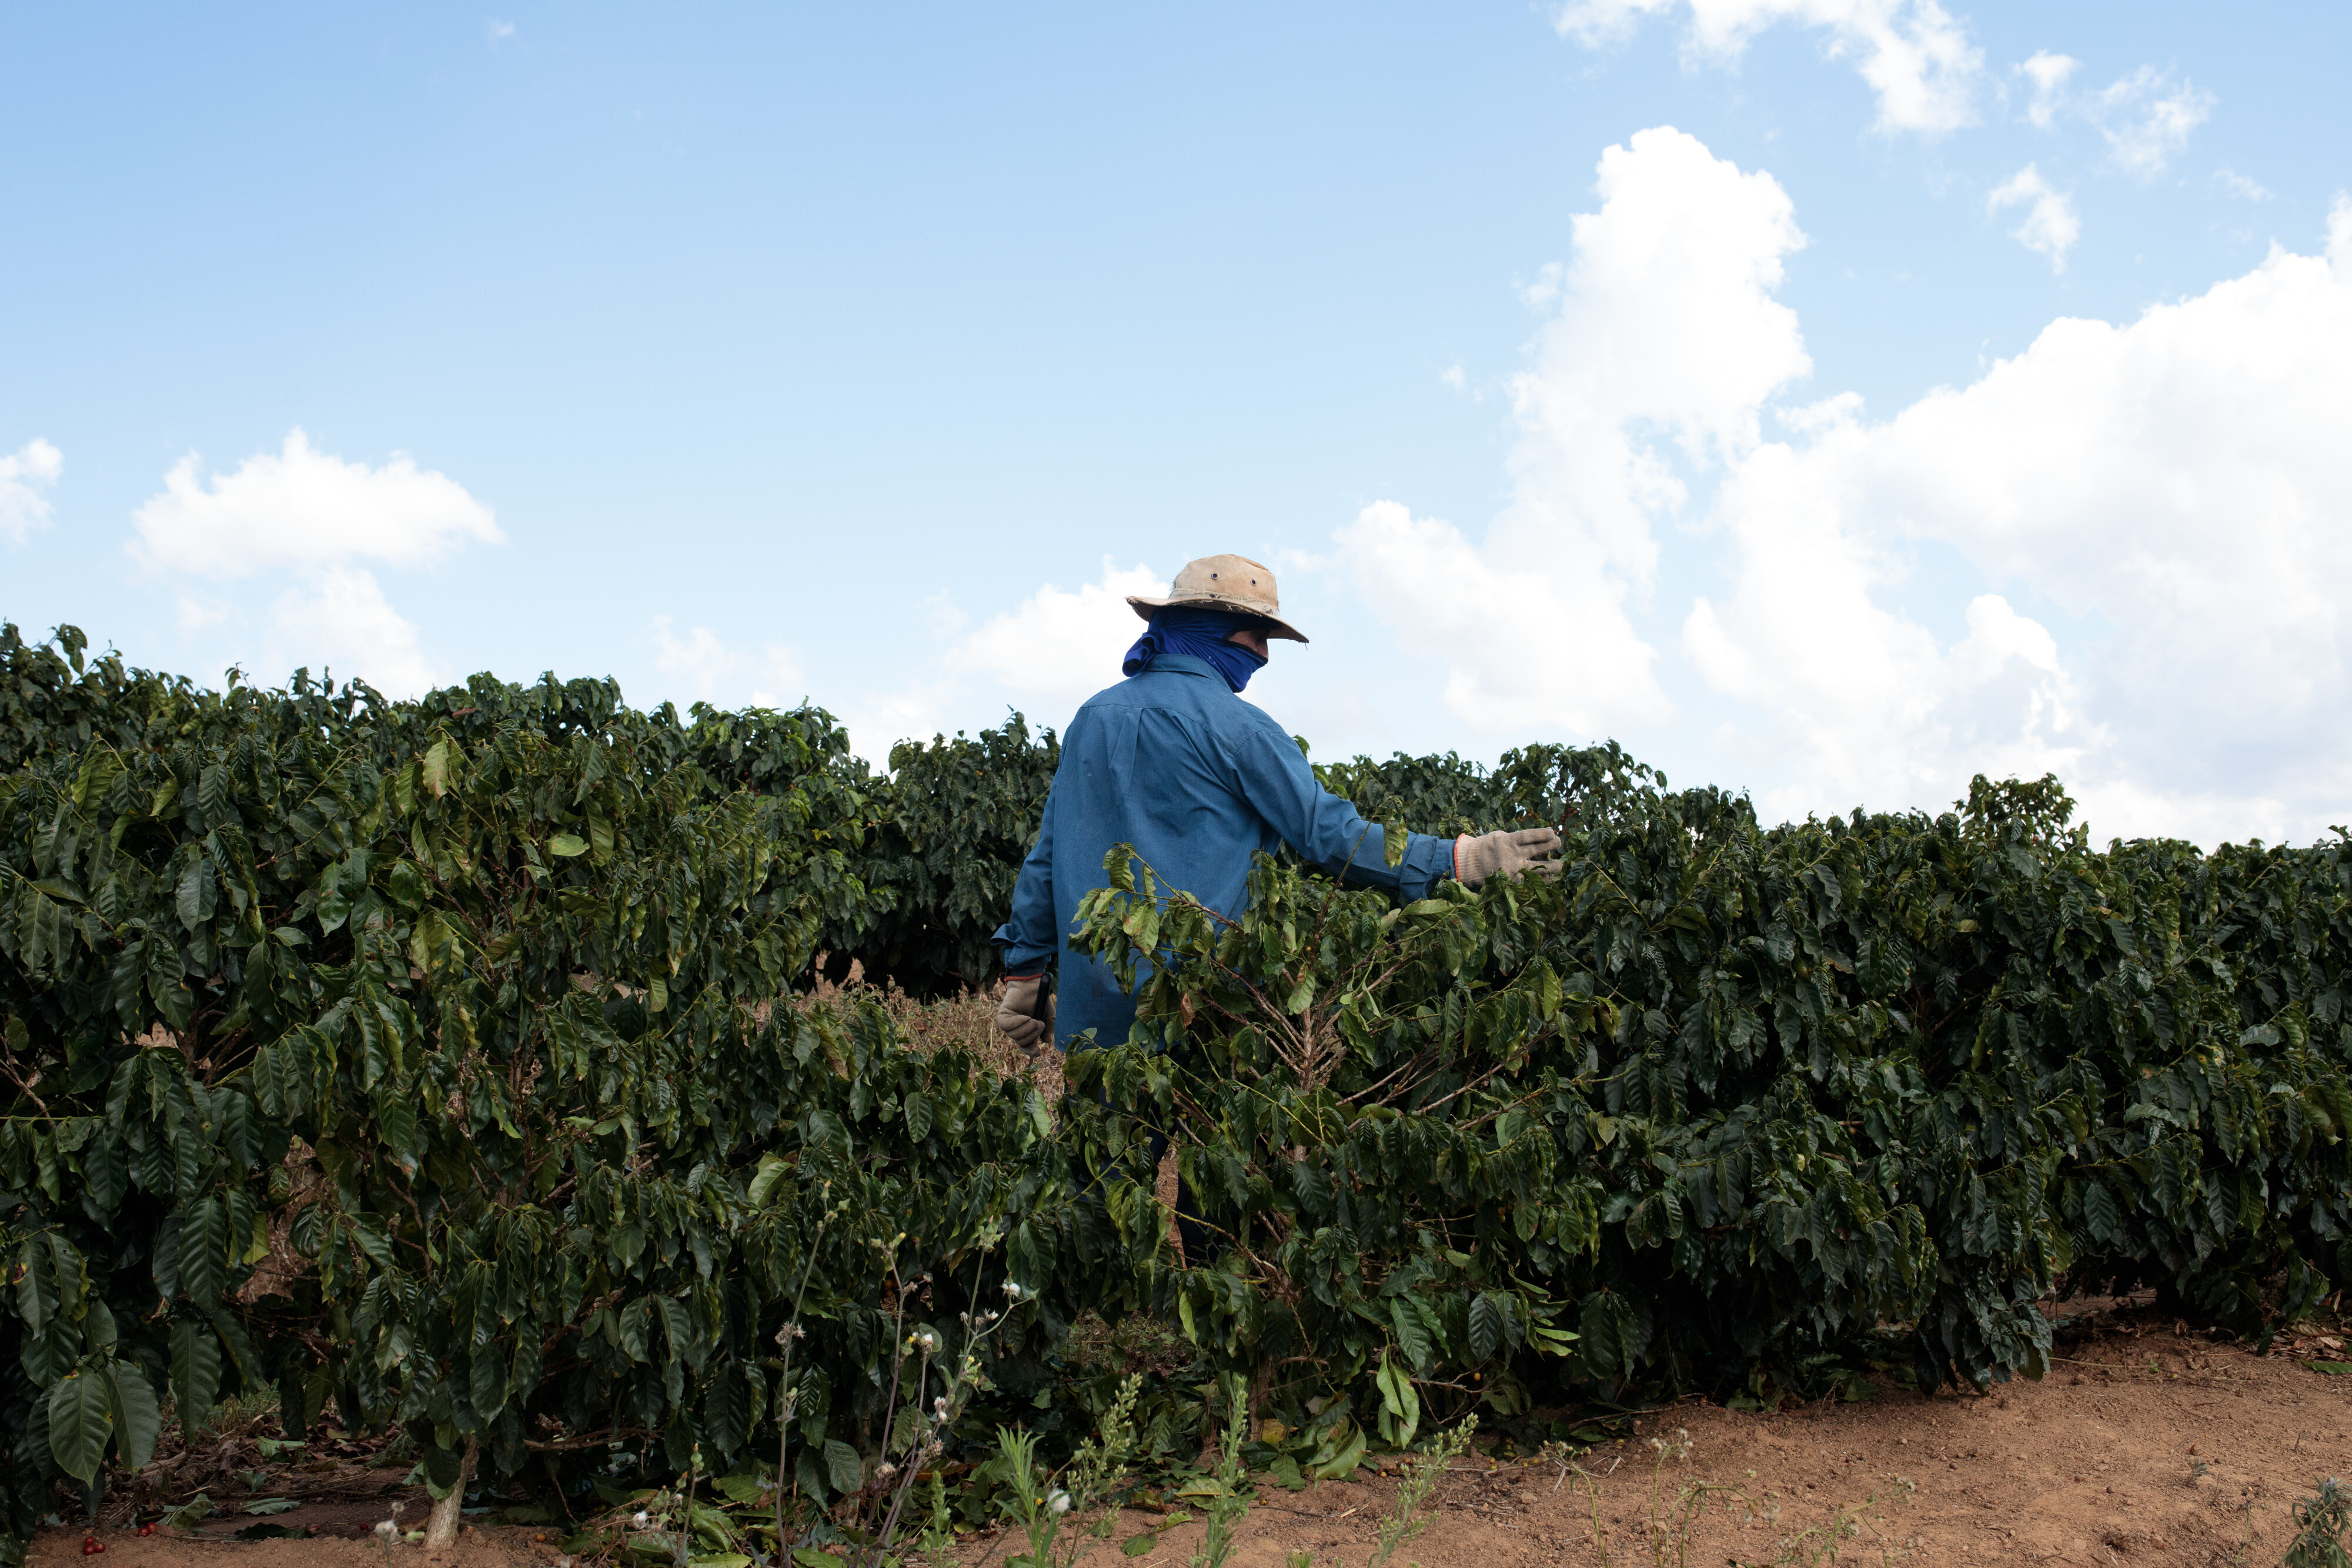 Coffee prices haven't been this high in 4 years